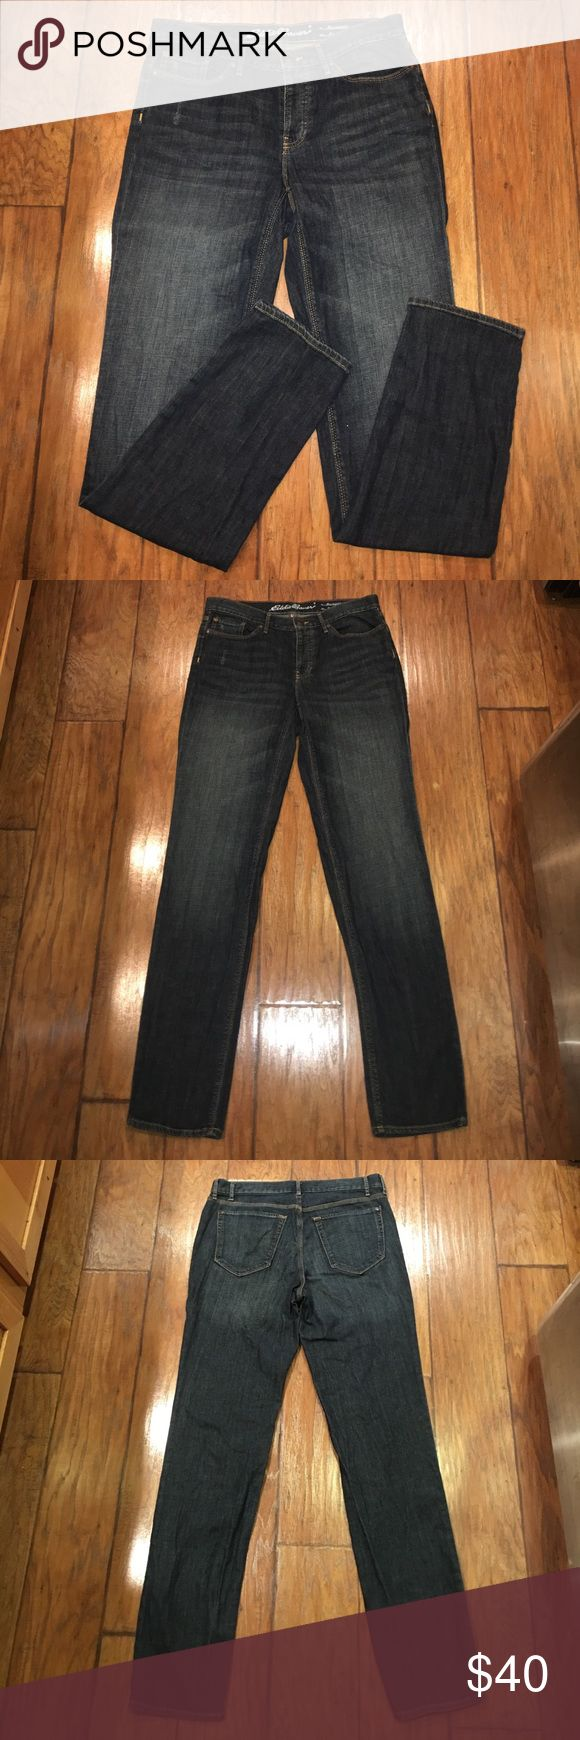 "🍁SALE🍁Eddie Bauer Boyfriend Relaxed Jeans T8 Like new condition Eddie Bauer Jeans. Fit: Boyfriend Leg: Relaxed. Rise is approx 9.5"". Inseam is approx 34"". Factory distressed on the front right pocket as shown in pics. Perfect Jeans for the fall! Offers welcomed. 20% off bundles! Eddie Bauer Jeans Boyfriend"